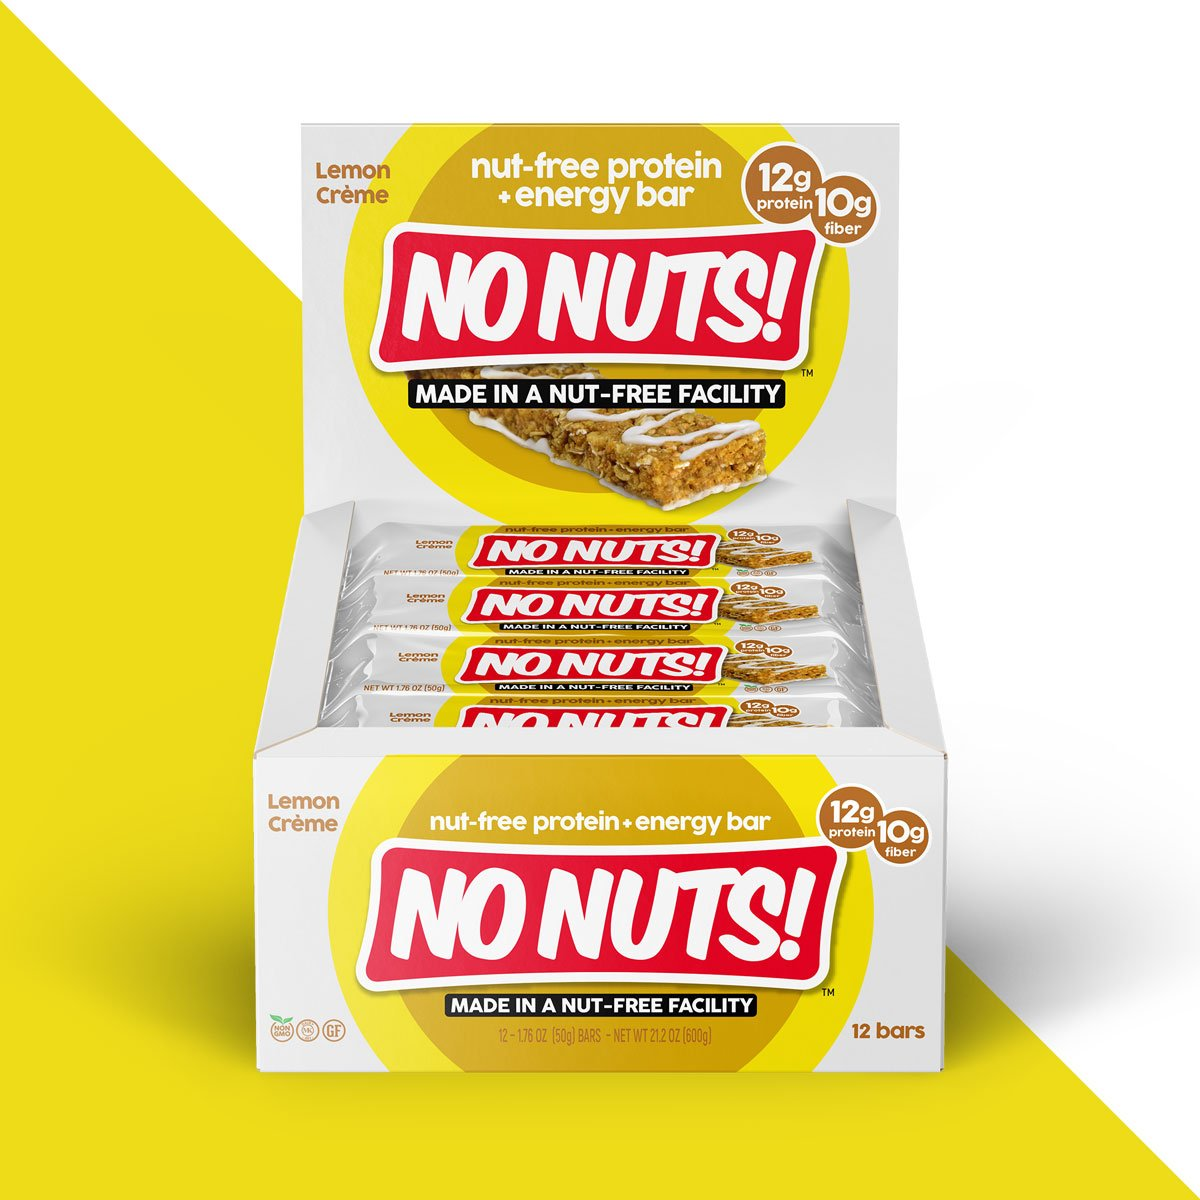 no-nuts-lemon-creme-bar-packaging-carton_2048x2048